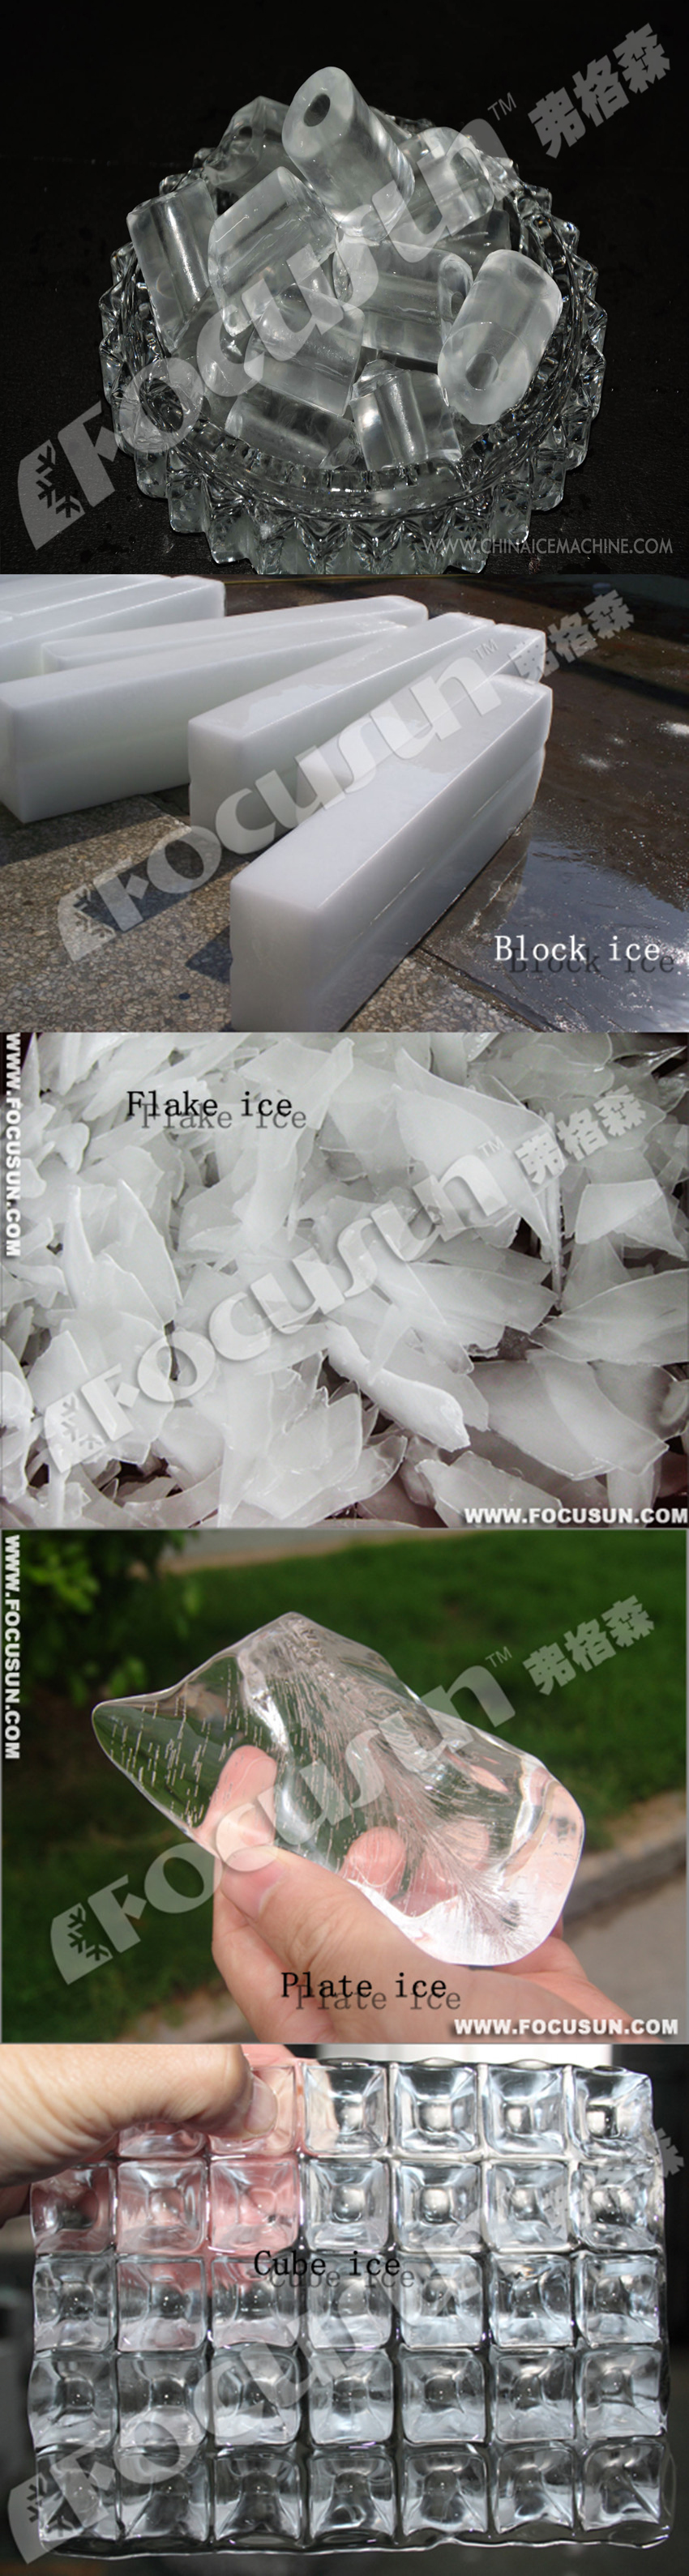 5 different forms of ice